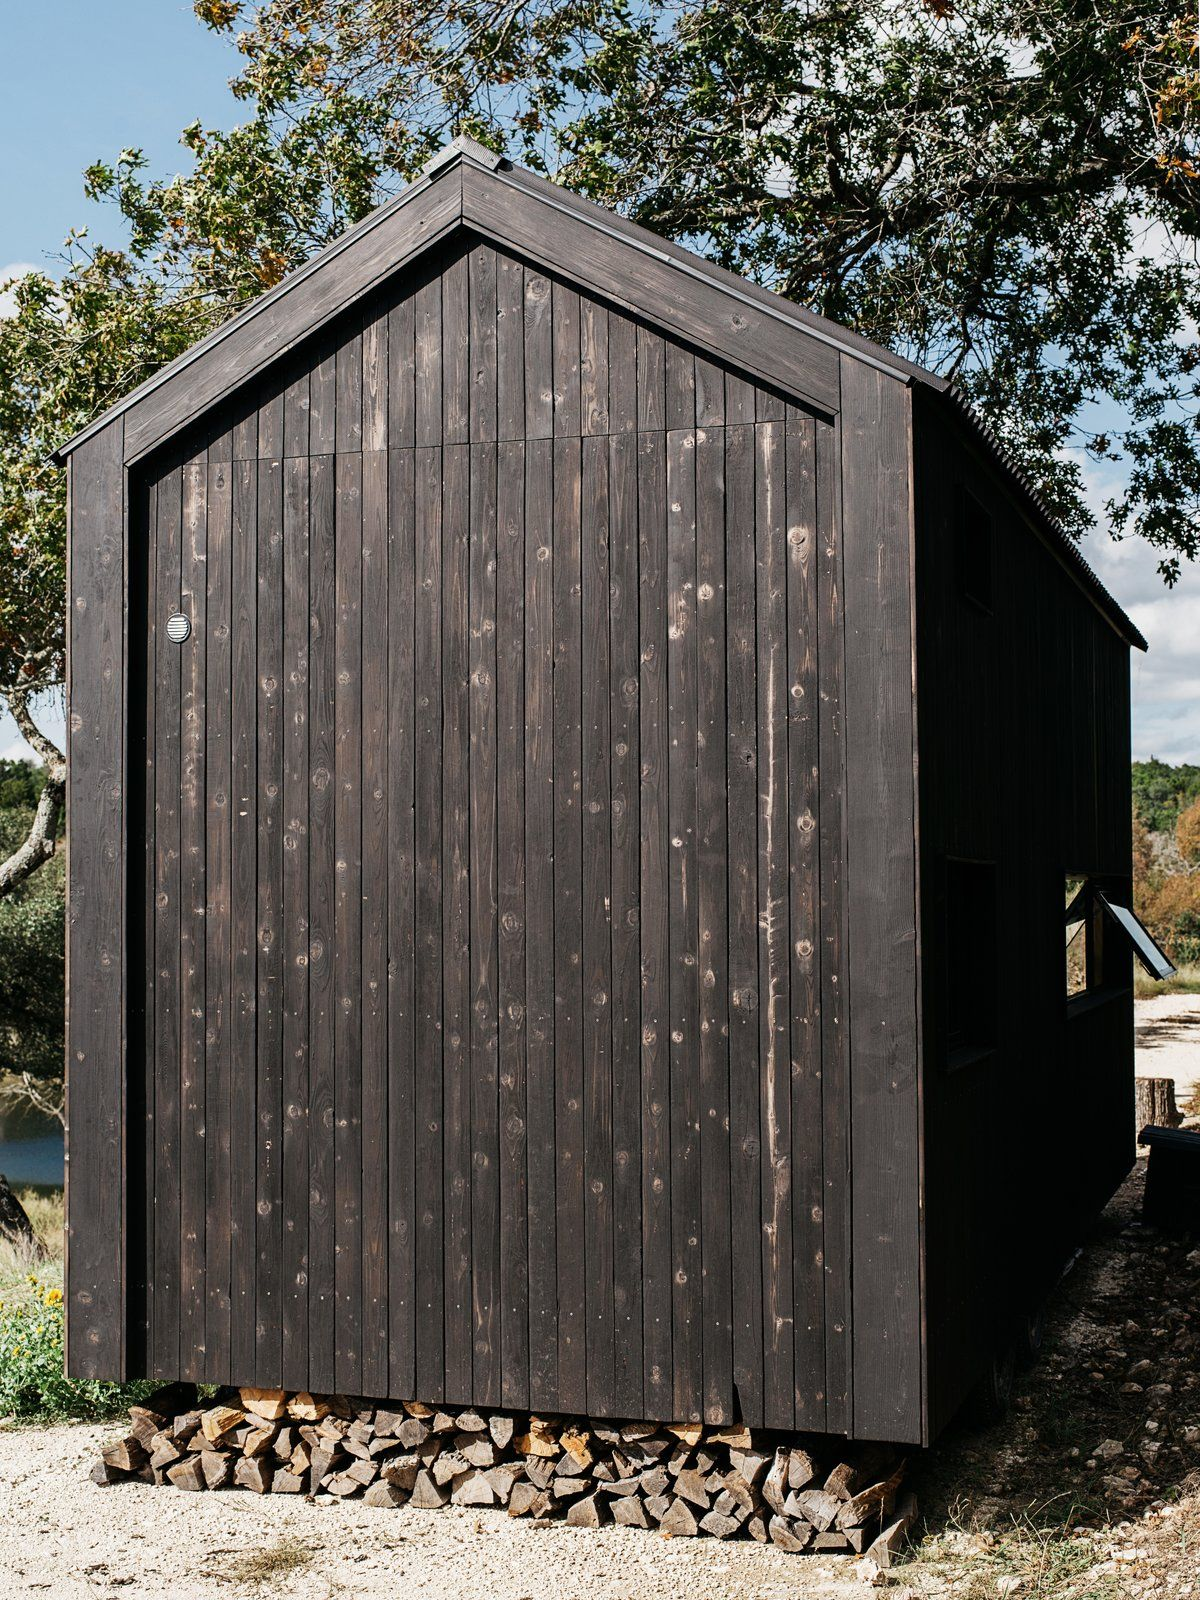 The cabin seems to be floating a few inches above the ground, allowing space for a wood-storage niche underneath